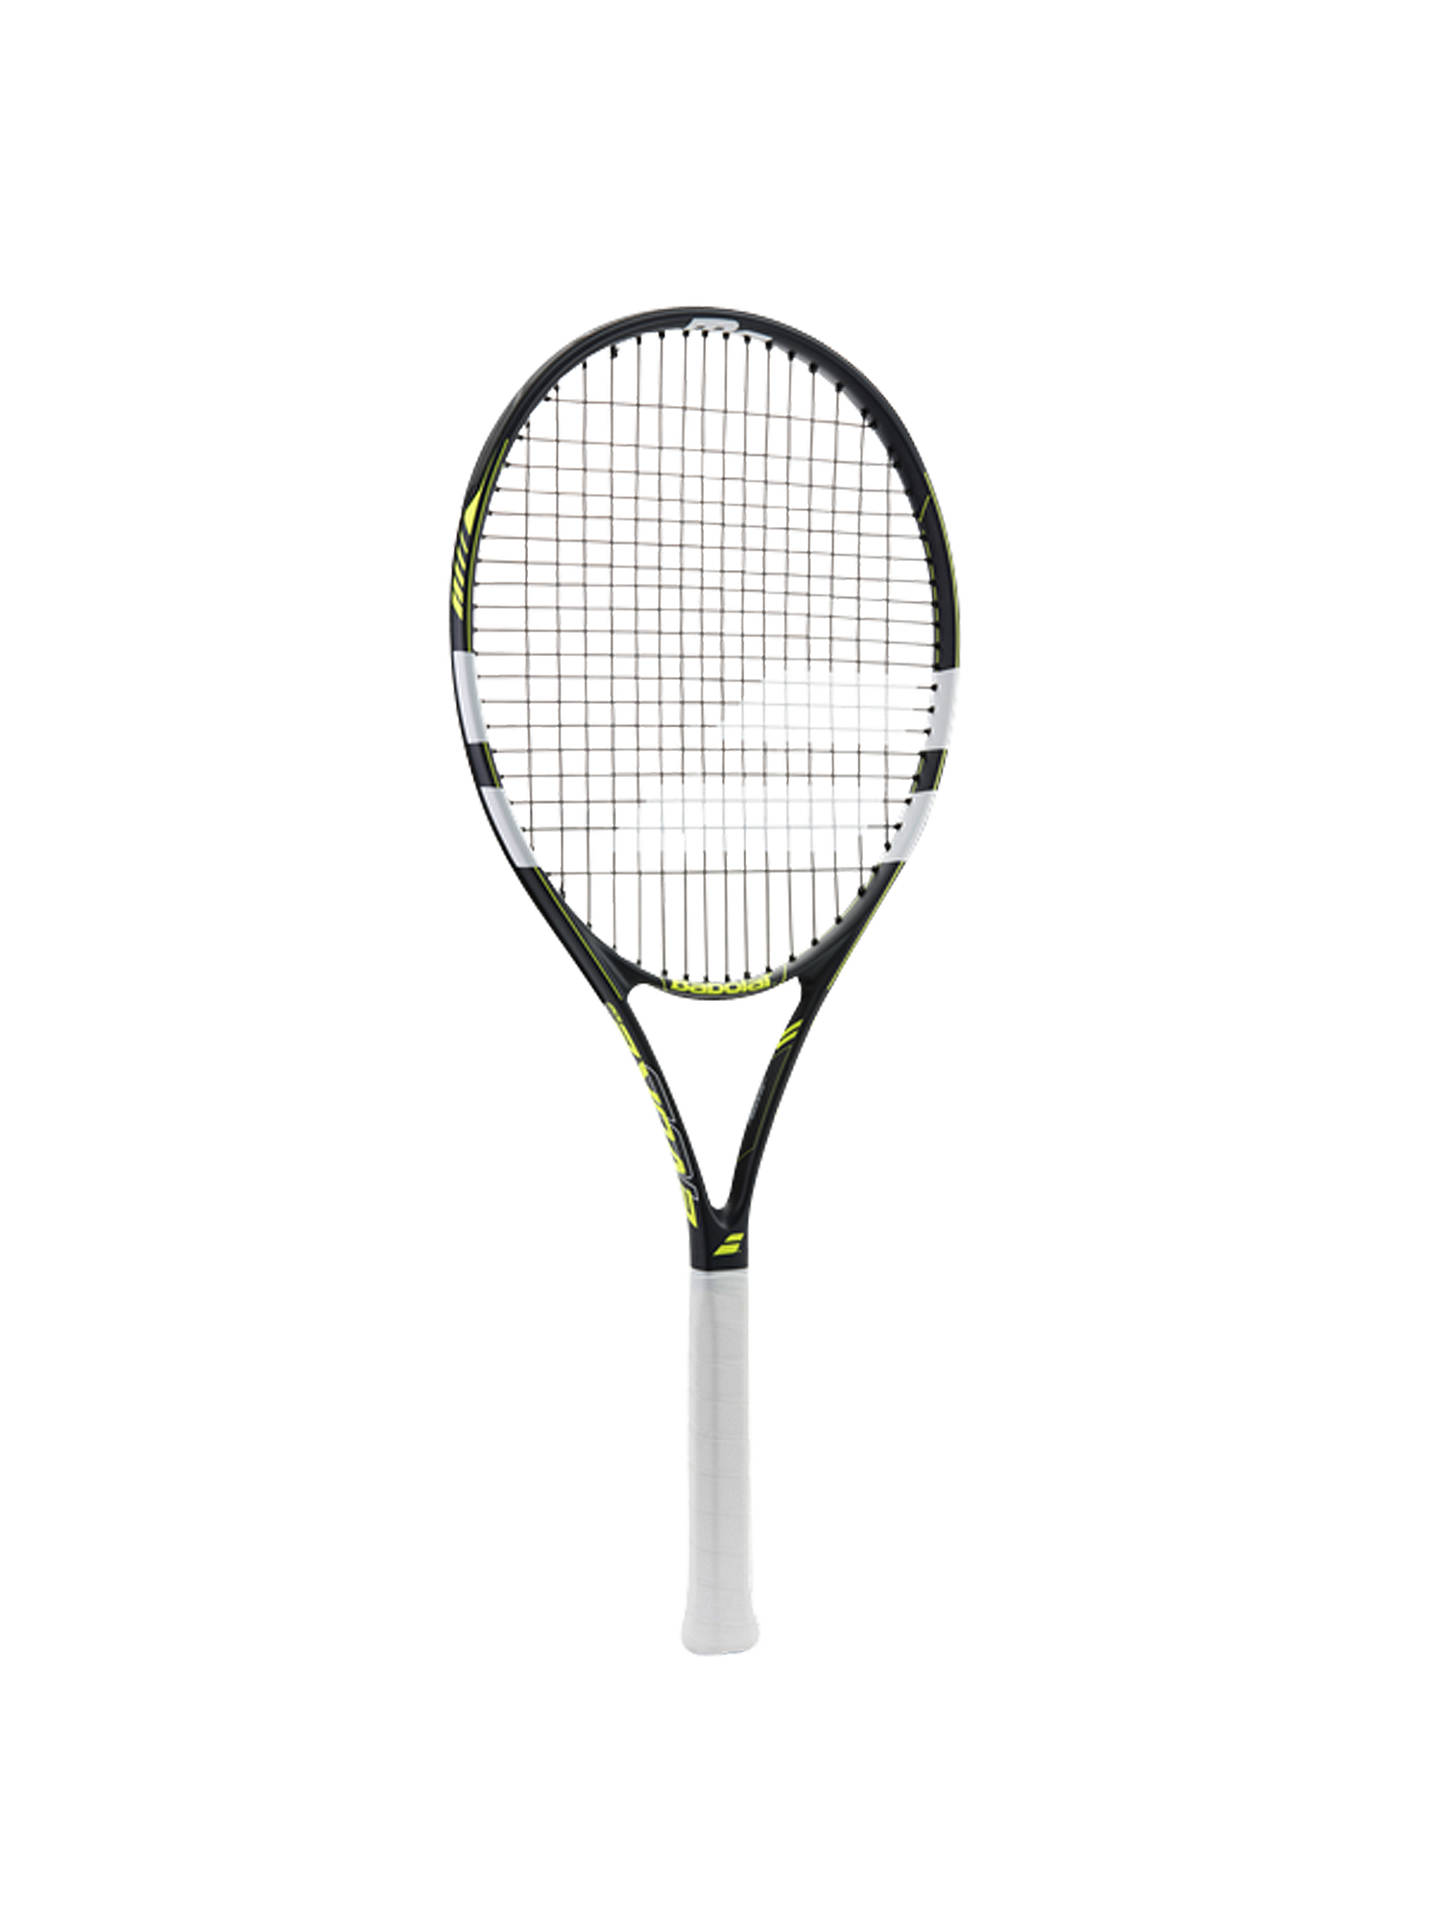 Buy Babolat Evoke 102 Aluminium Fused Graphite Beginners Tennis Racket, Grey/Yellow Online at johnlewis.com